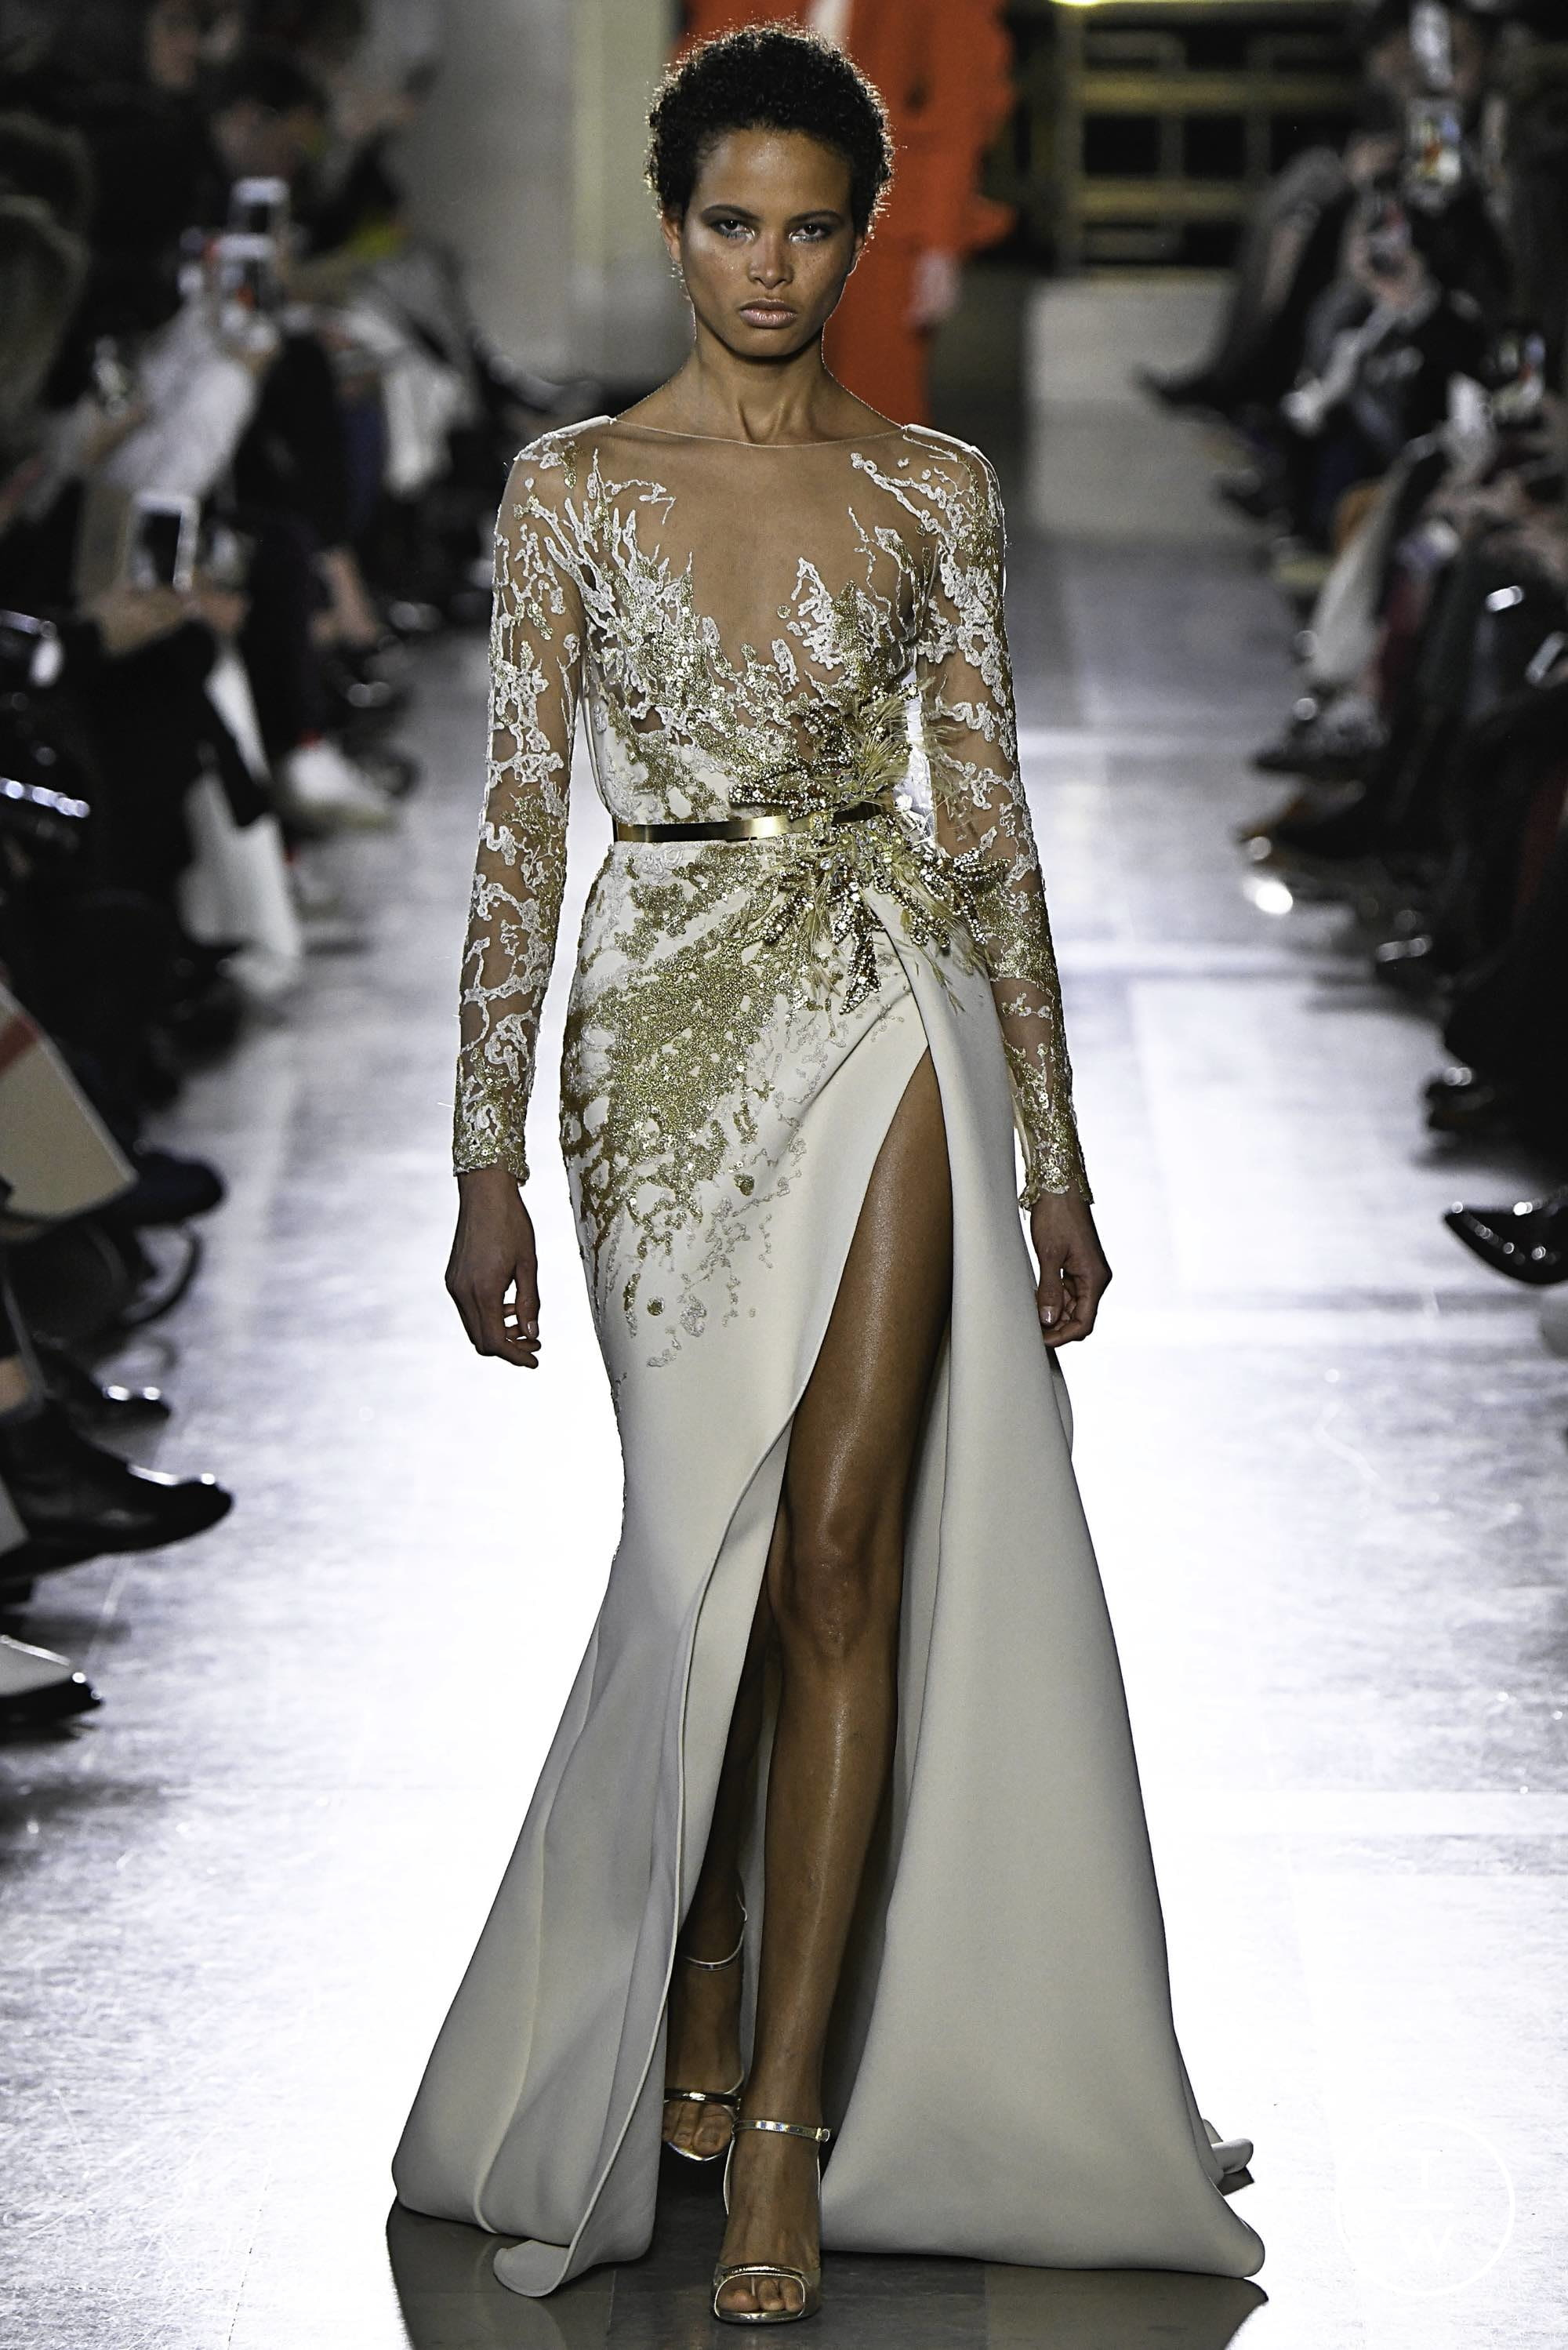 Elie Saab S S19 Couture 25 The Fashion Search Engine Tagwalk